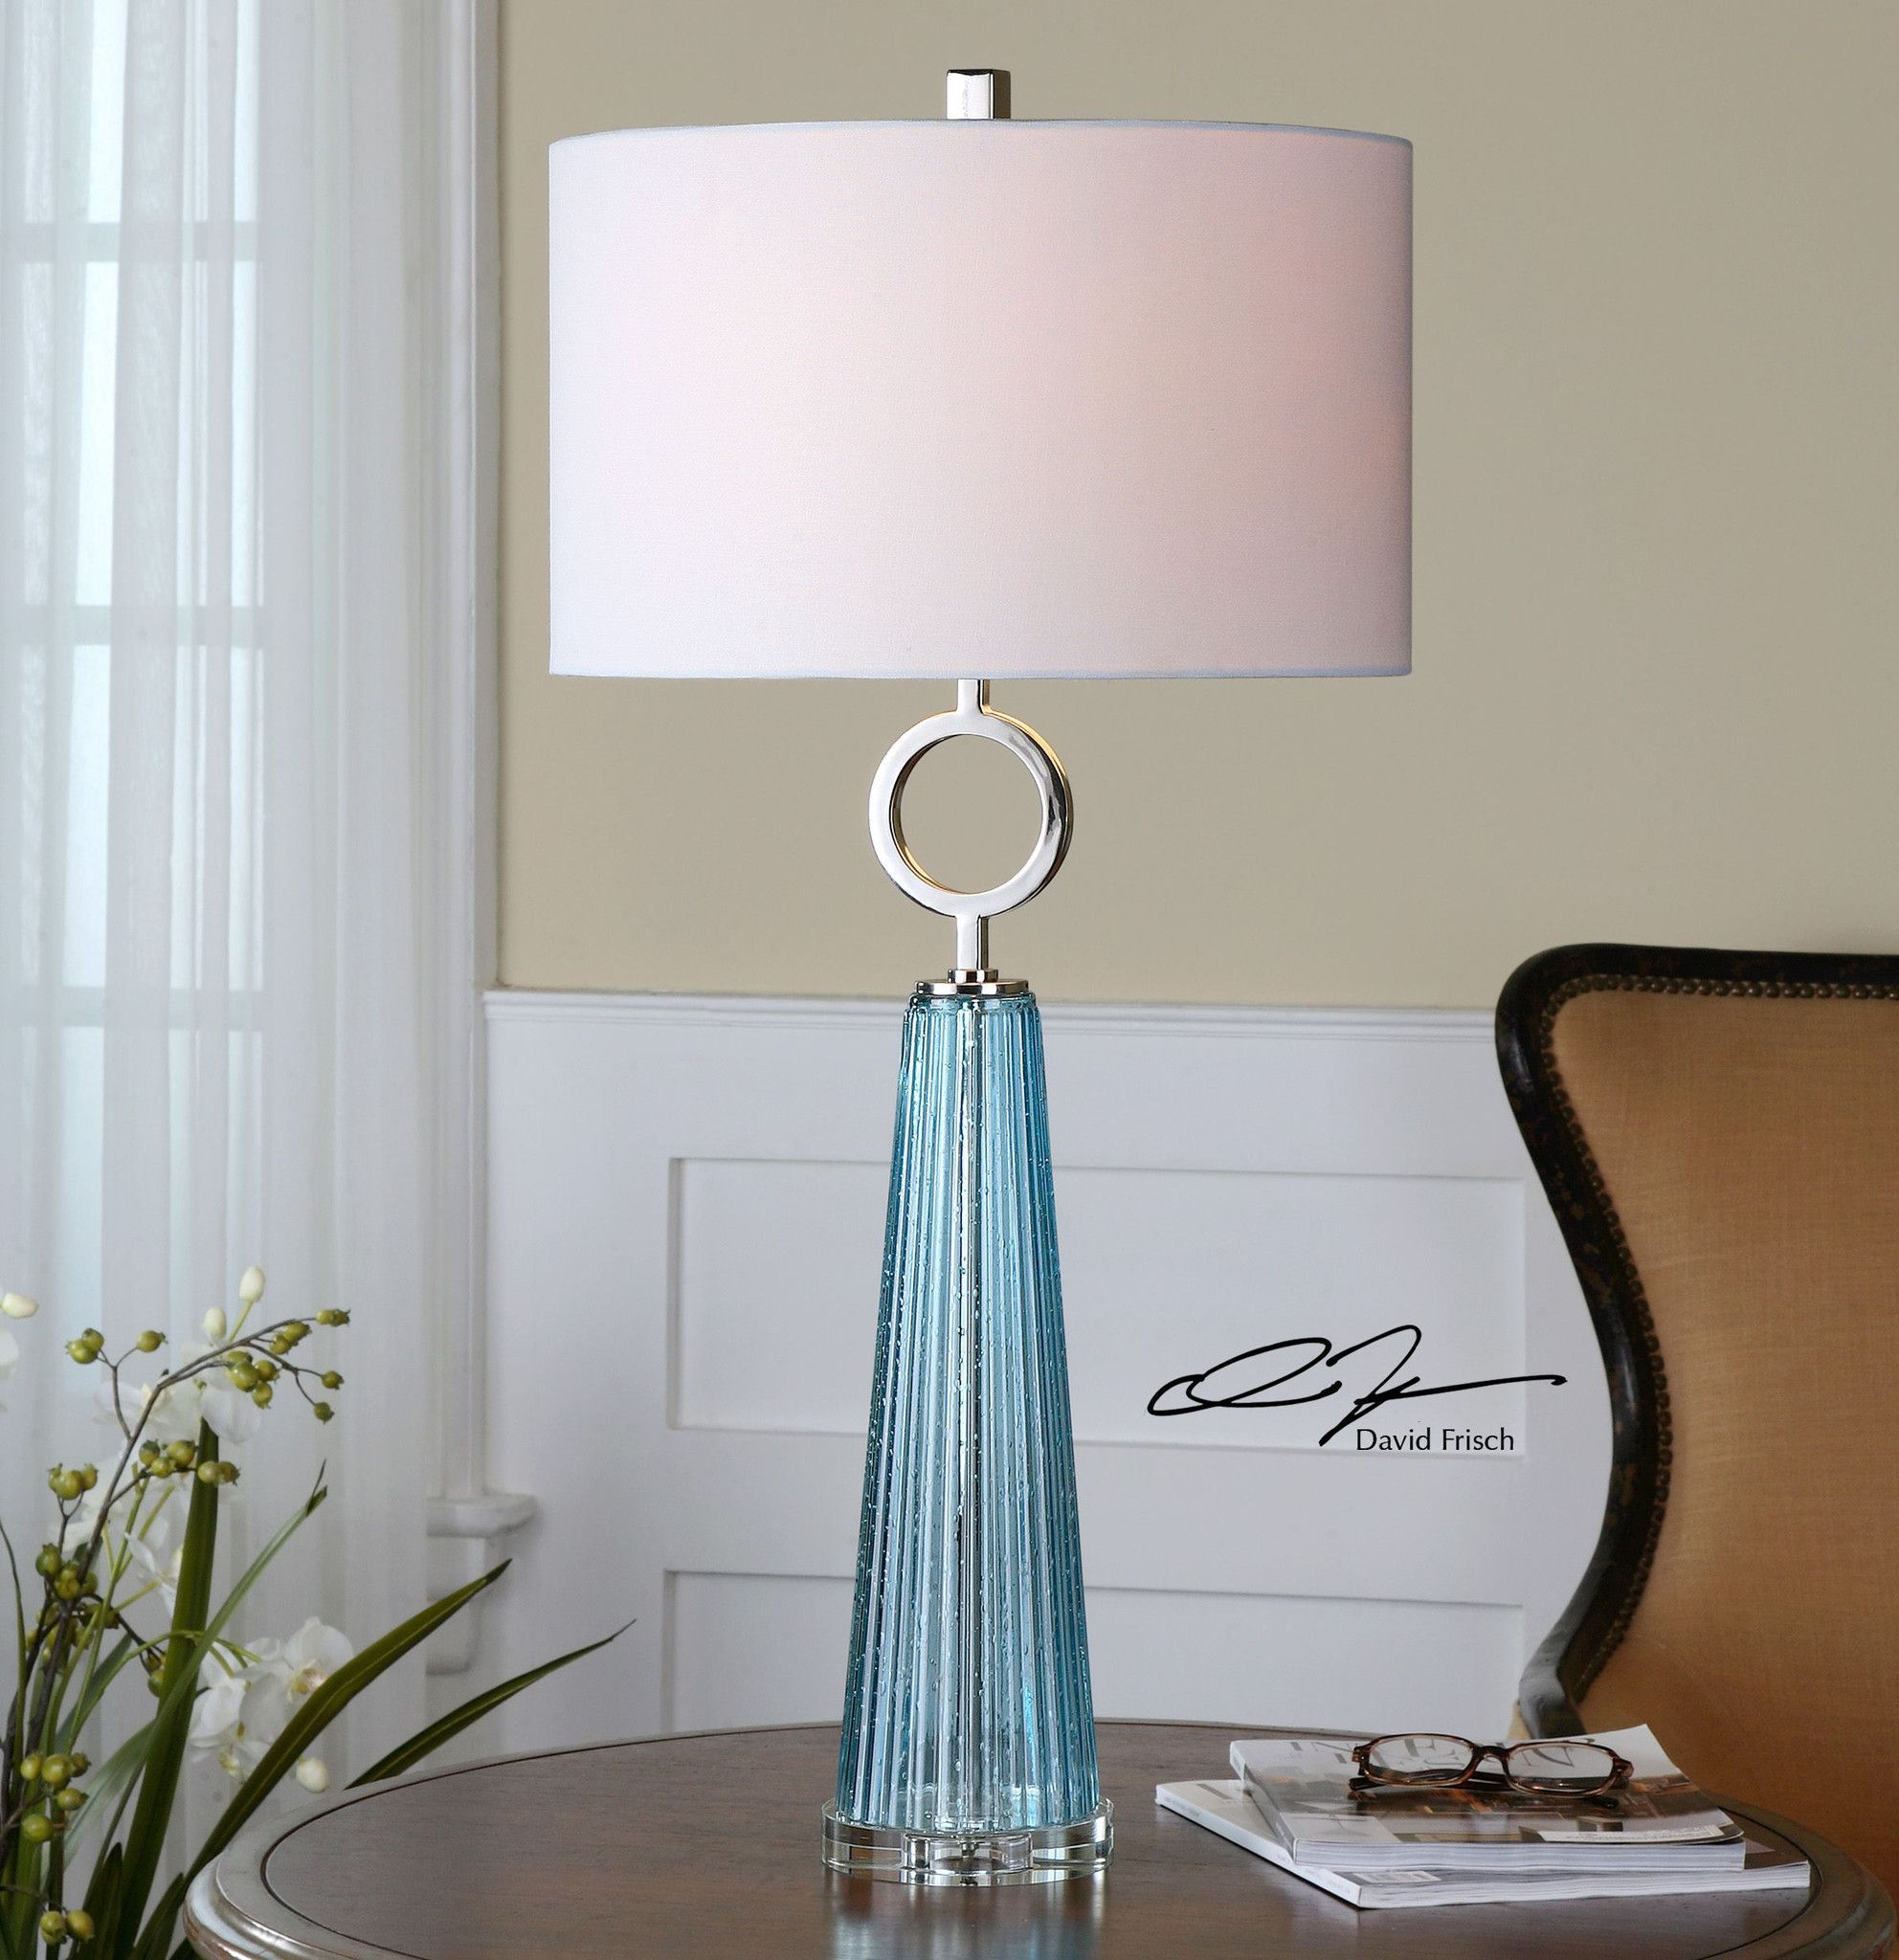 Navier Blue Glass Table Lamp Seeded Blue Glass With A Ribbed Texture  Accented With Polished Nickel Plated Details. The Round Hardback Shade Is A  White Linen ...